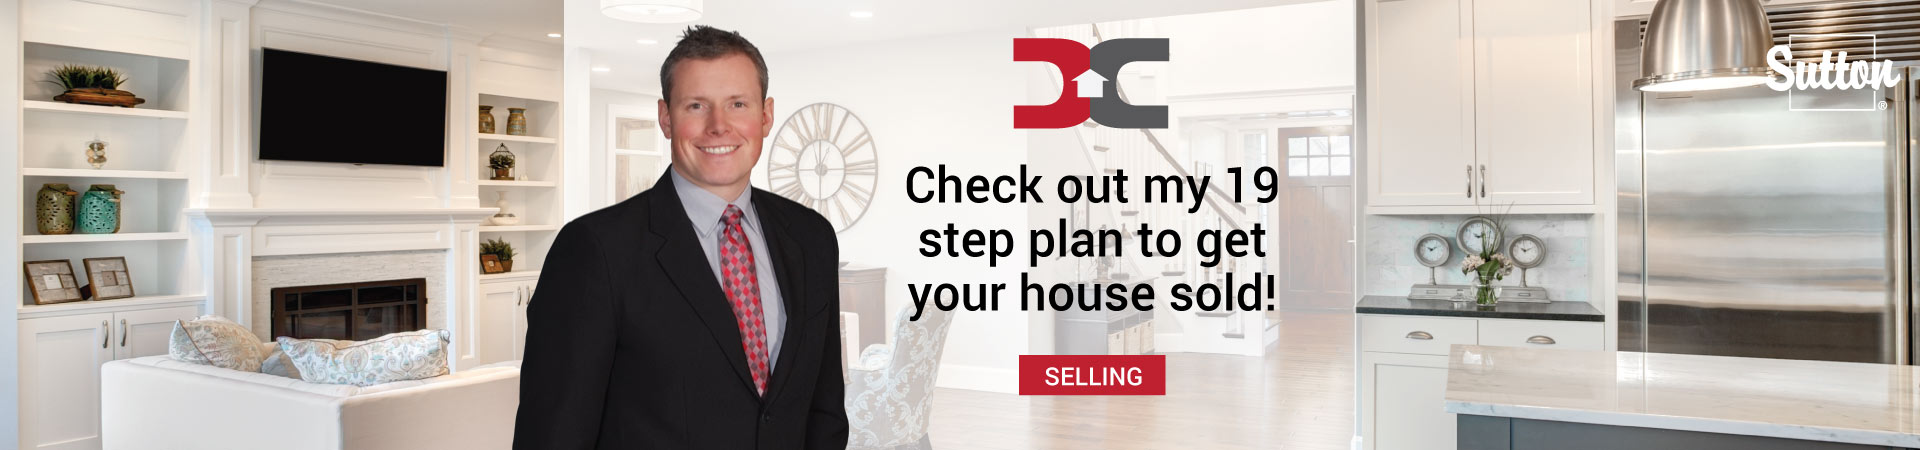 Daniel Cram's 19 Step Plan to Sell Your Home Grande Prairie